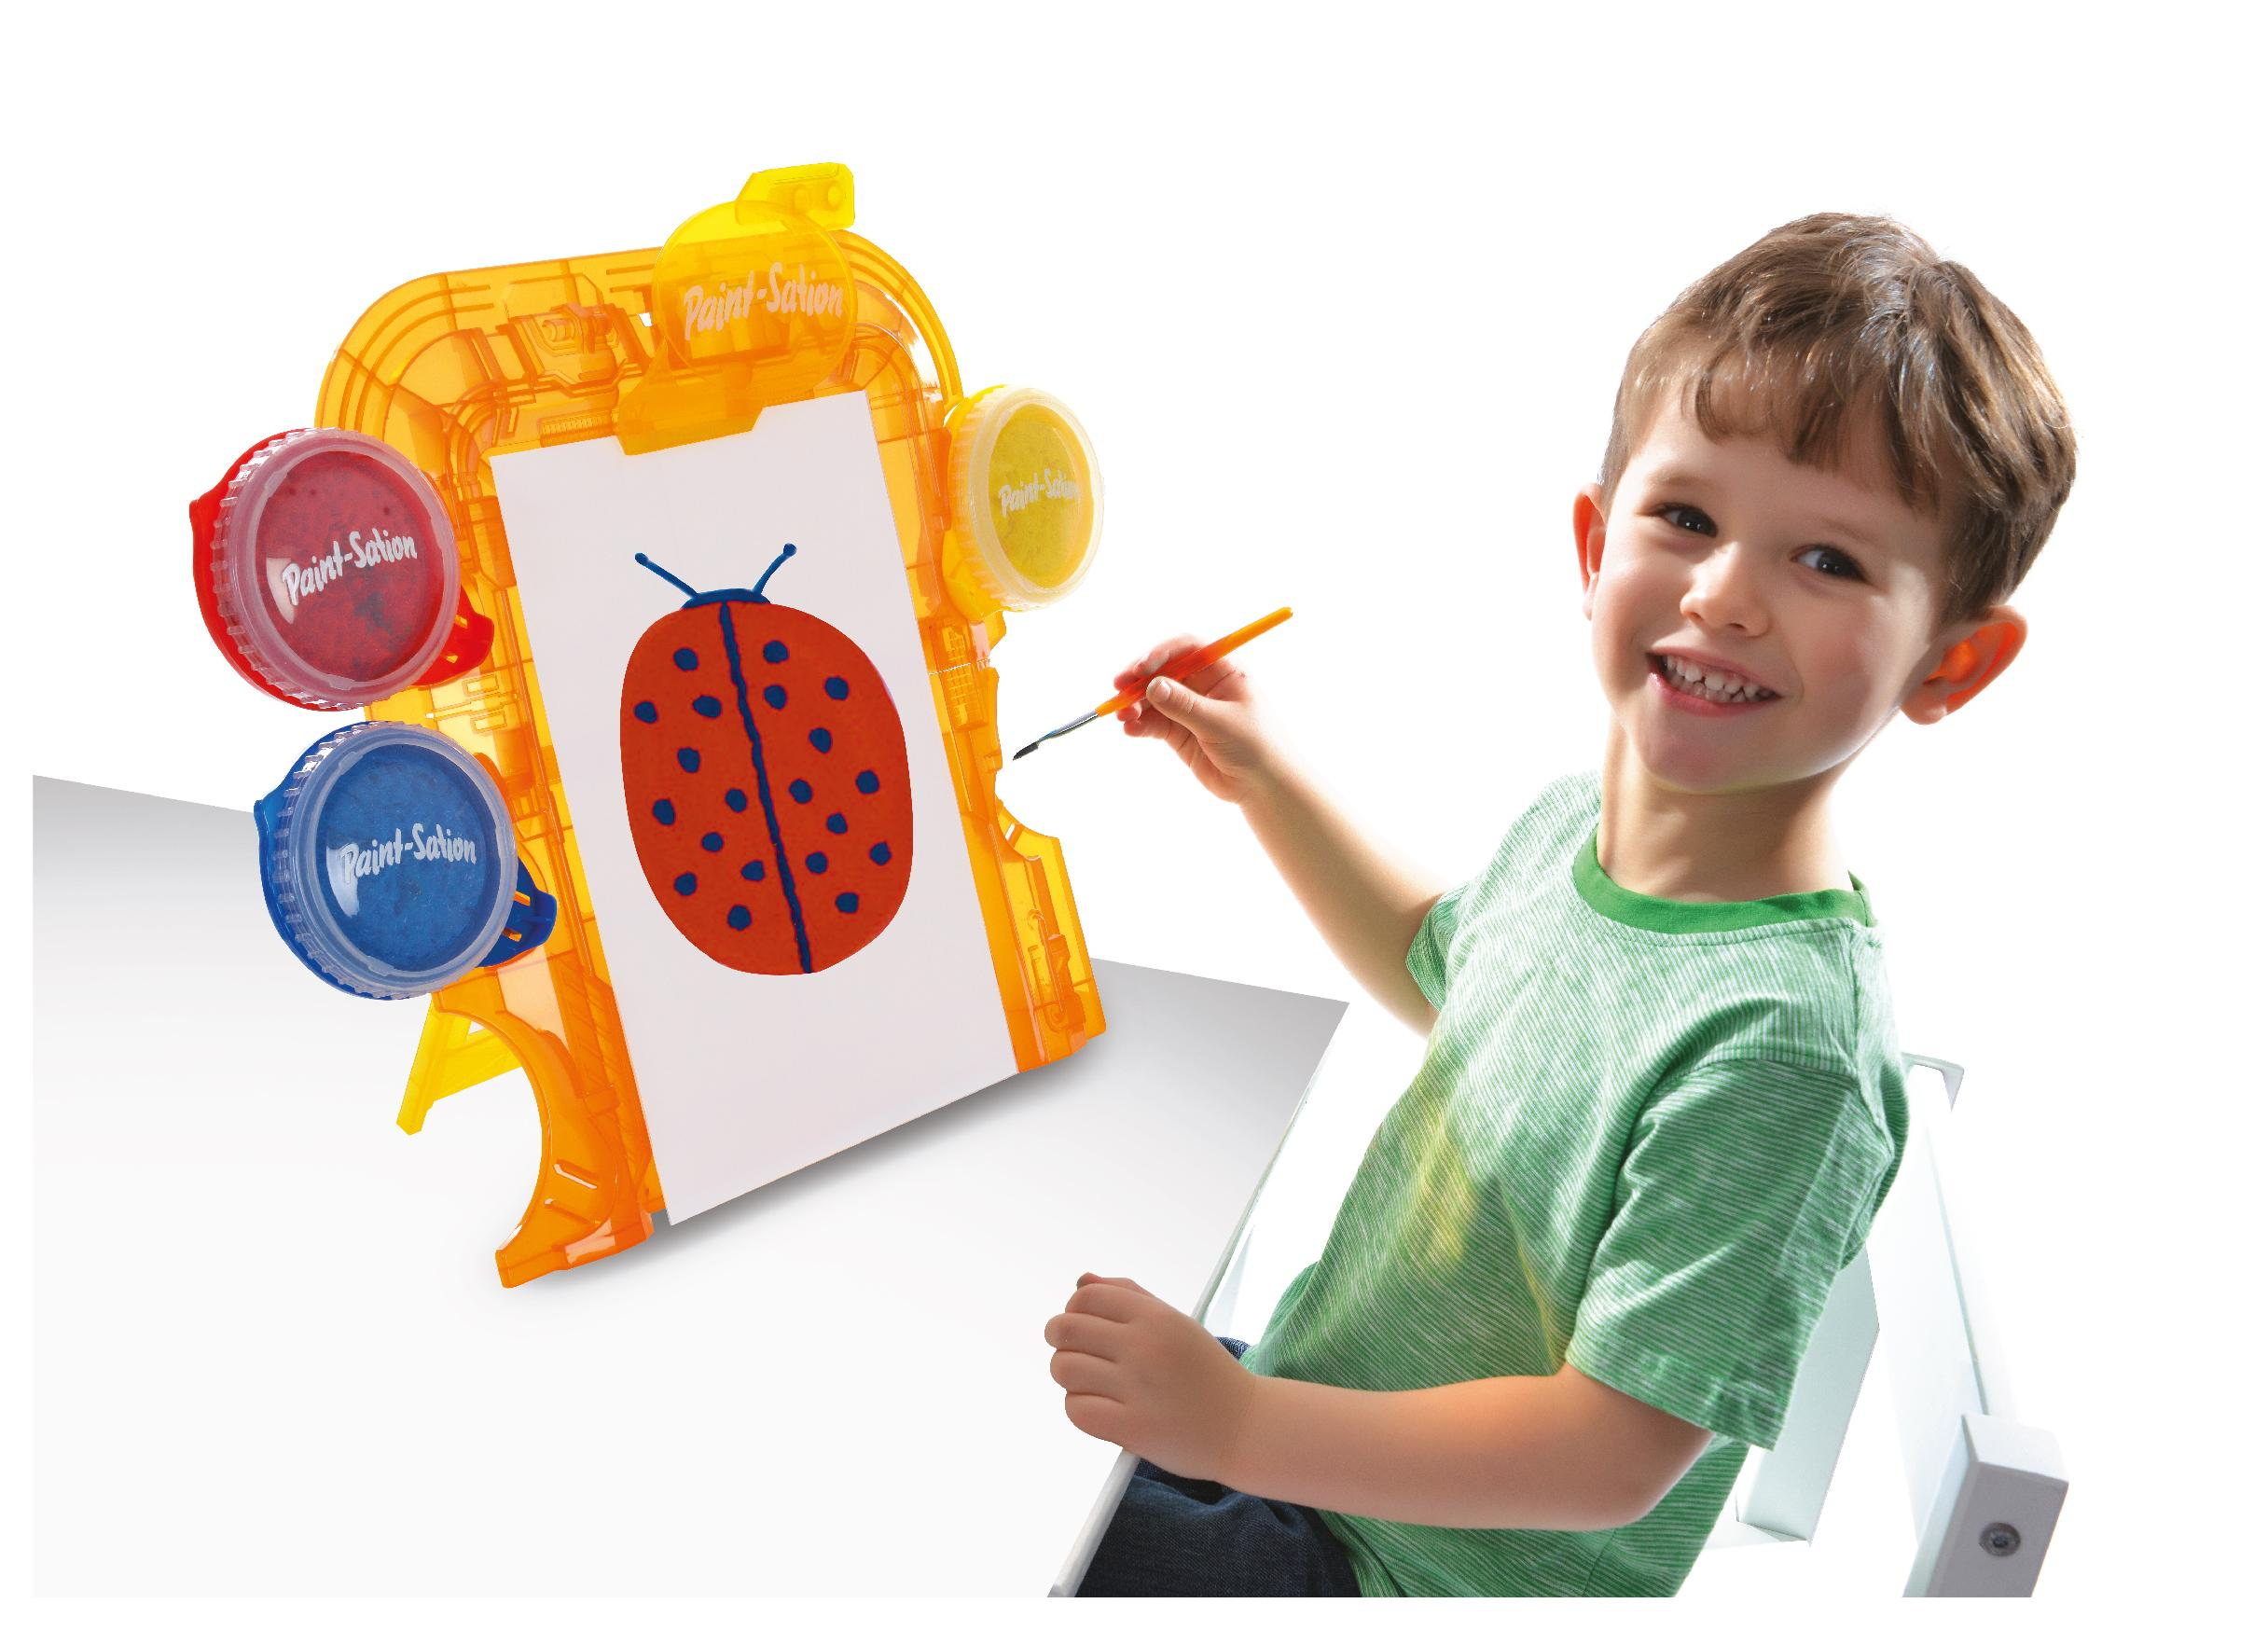 Toys For Painting : Paint sation mess free kids easel amazon